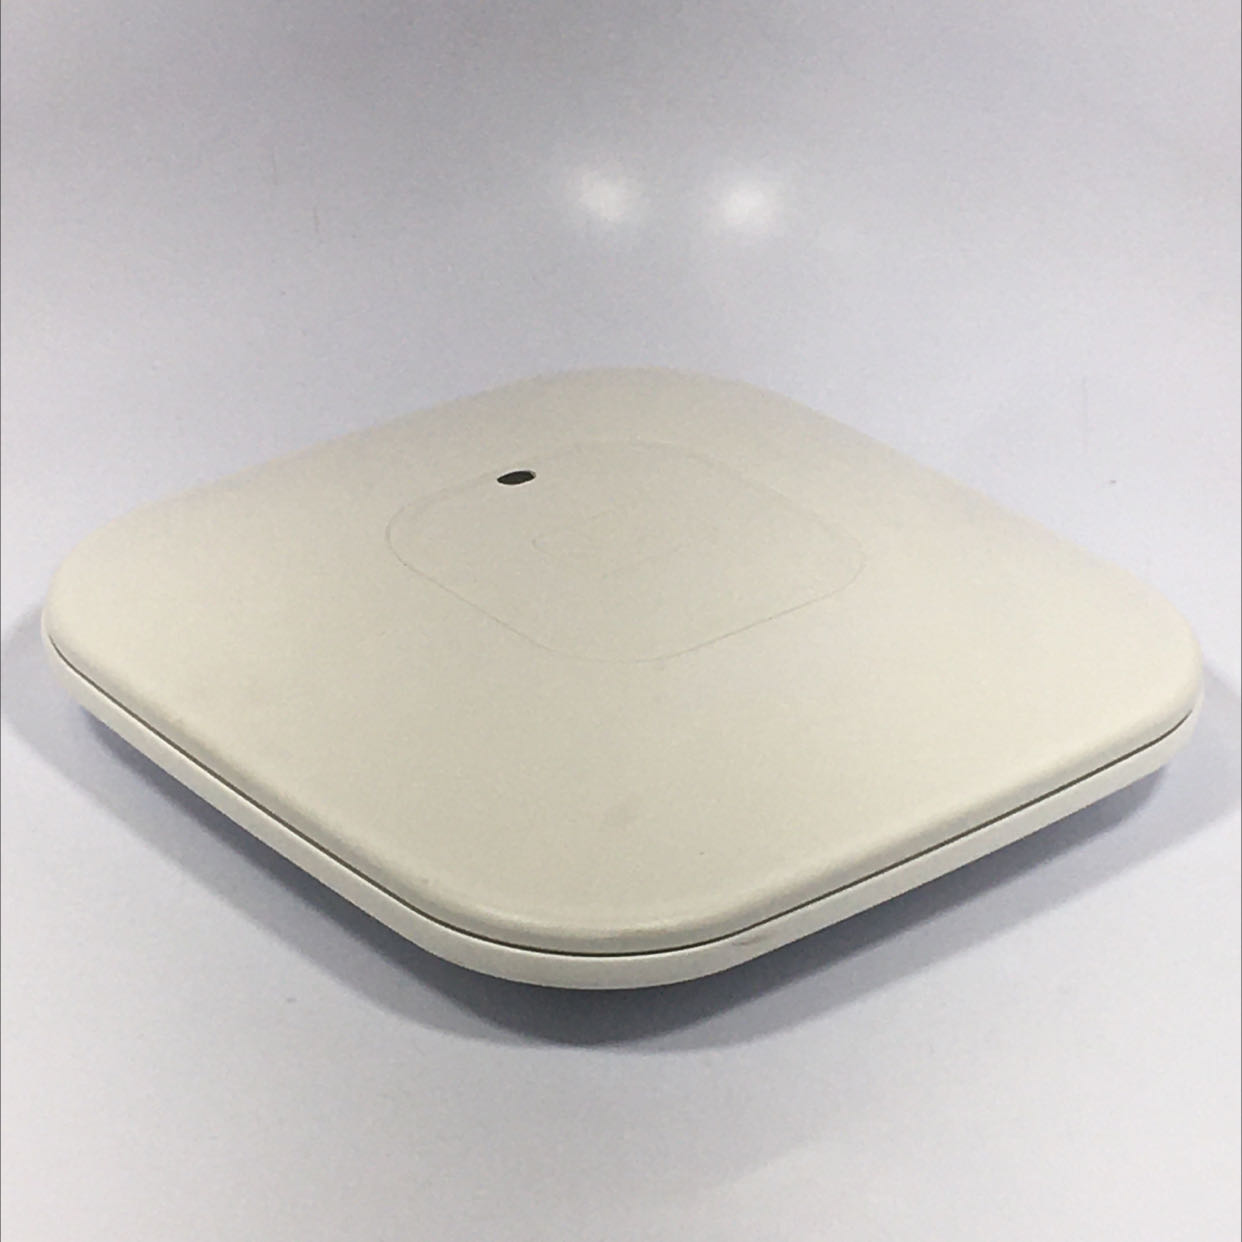 Cisco AIR-CAP2602I-A-K9 Dual Band Access Point AS IS